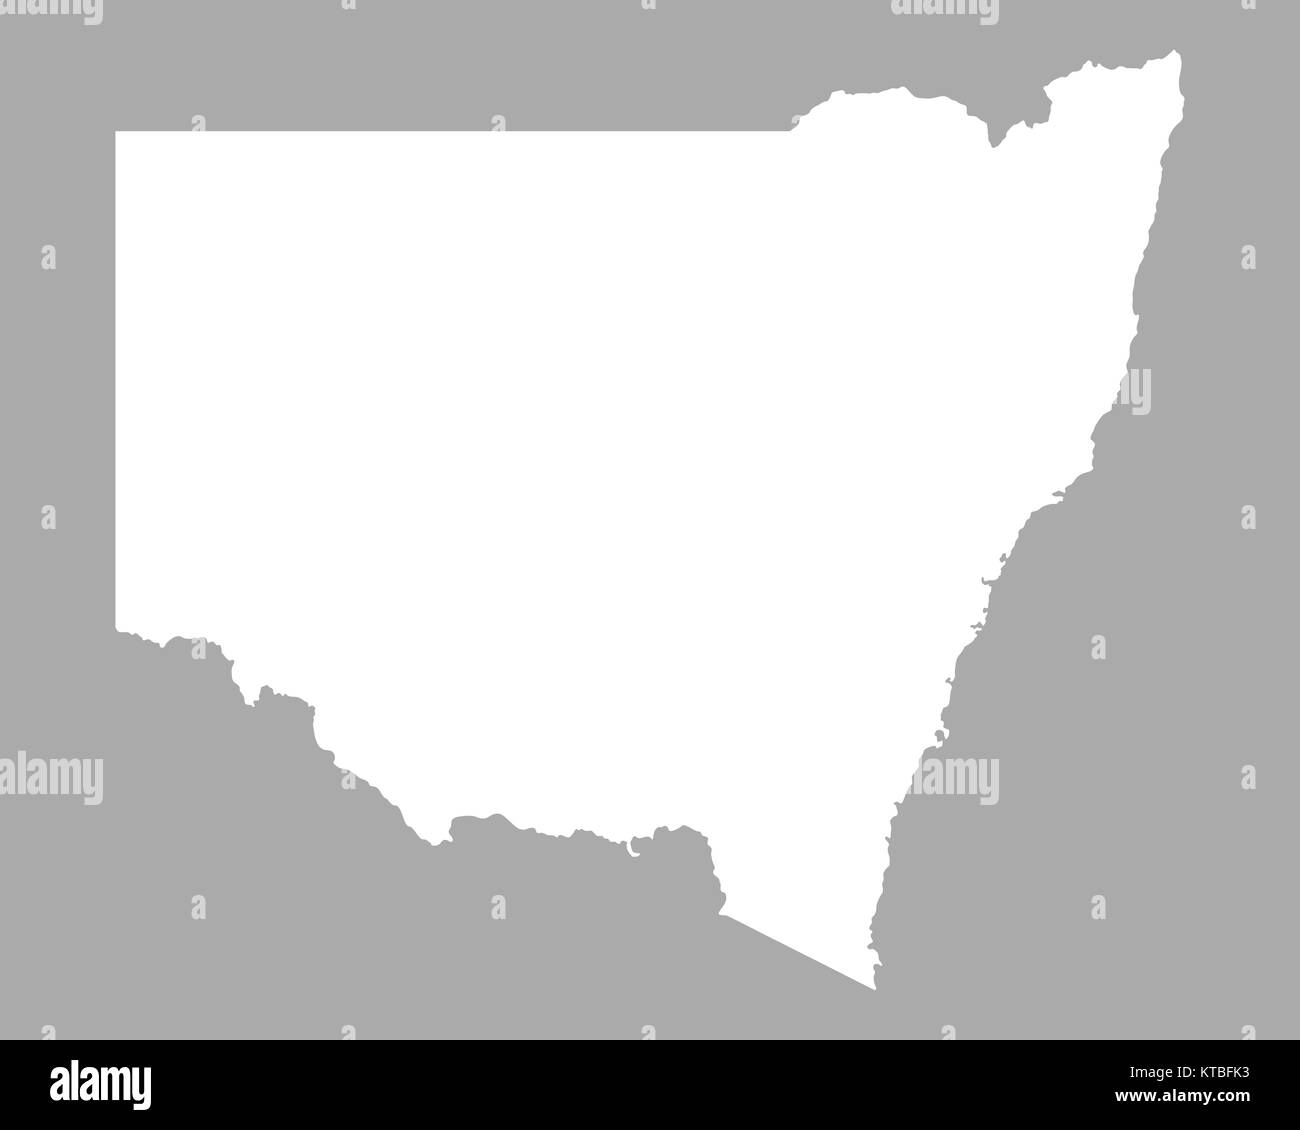 Karte Von New South Wales Stock Photo 169898823 Alamy